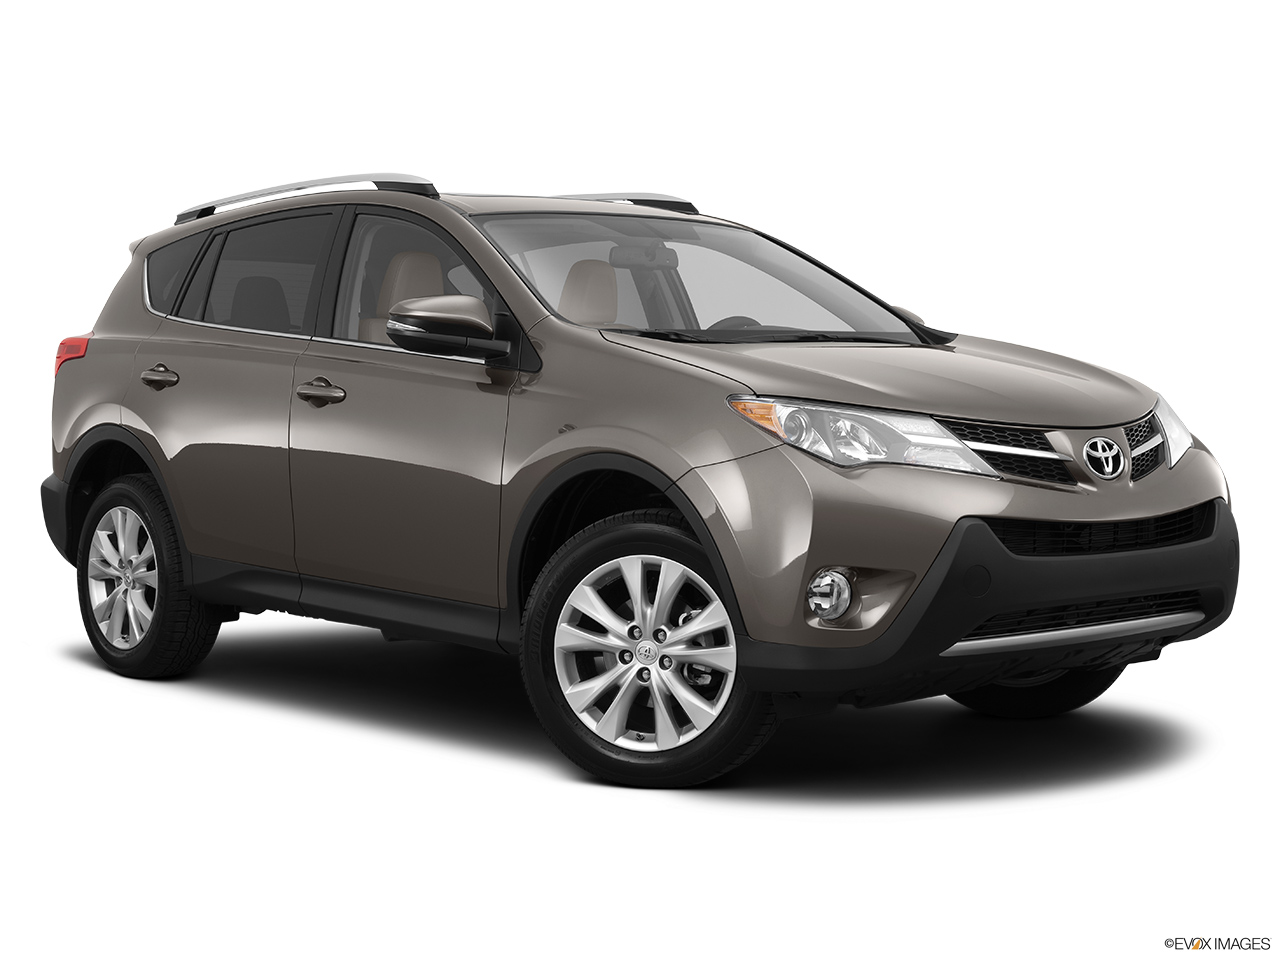 2014 toyota rav4 fwd limited. Black Bedroom Furniture Sets. Home Design Ideas